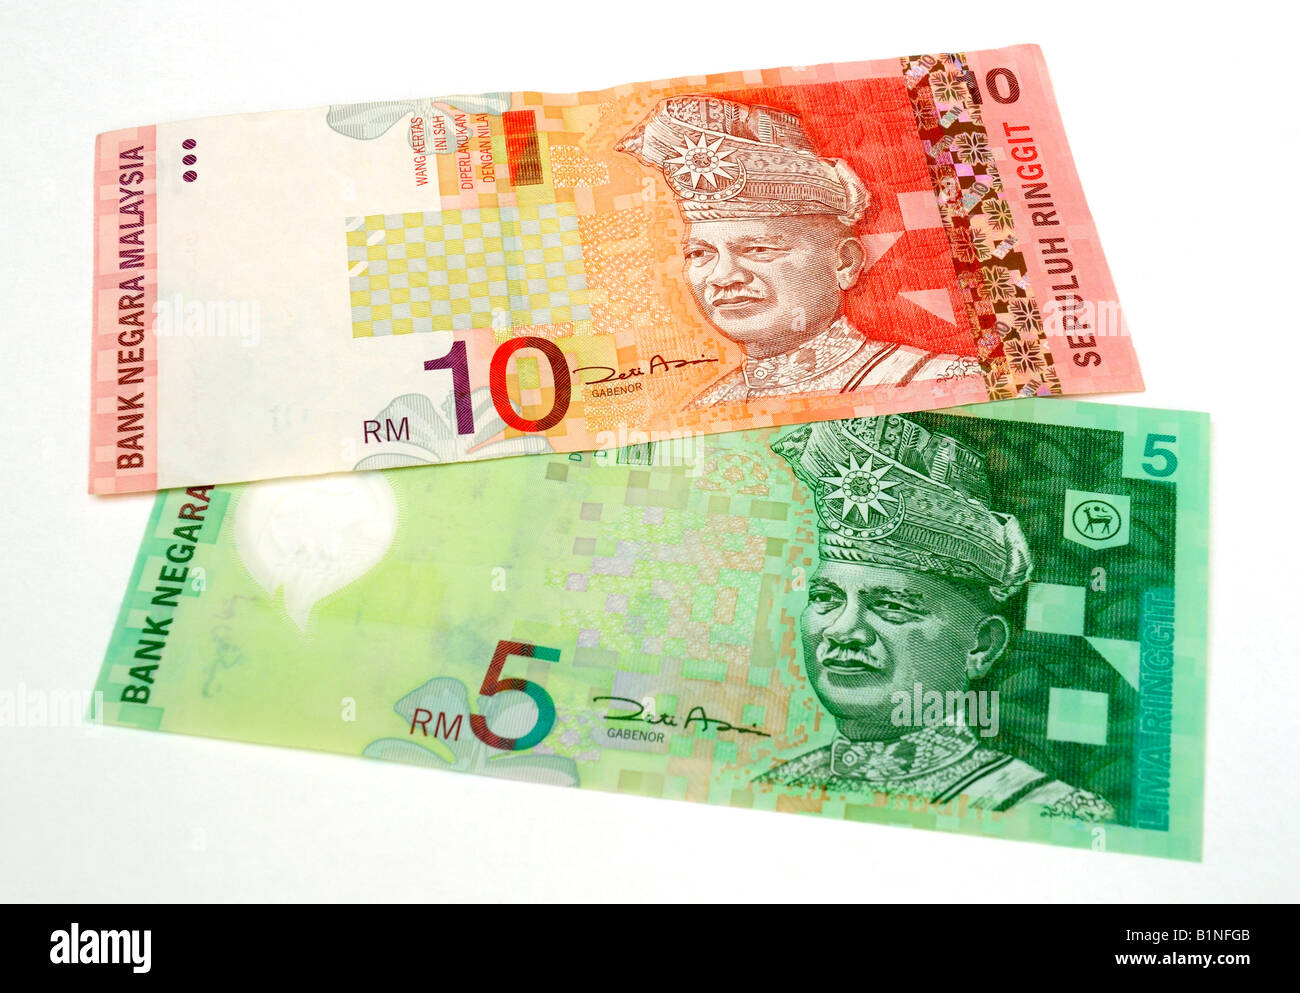 Forex trading banks in malaysia